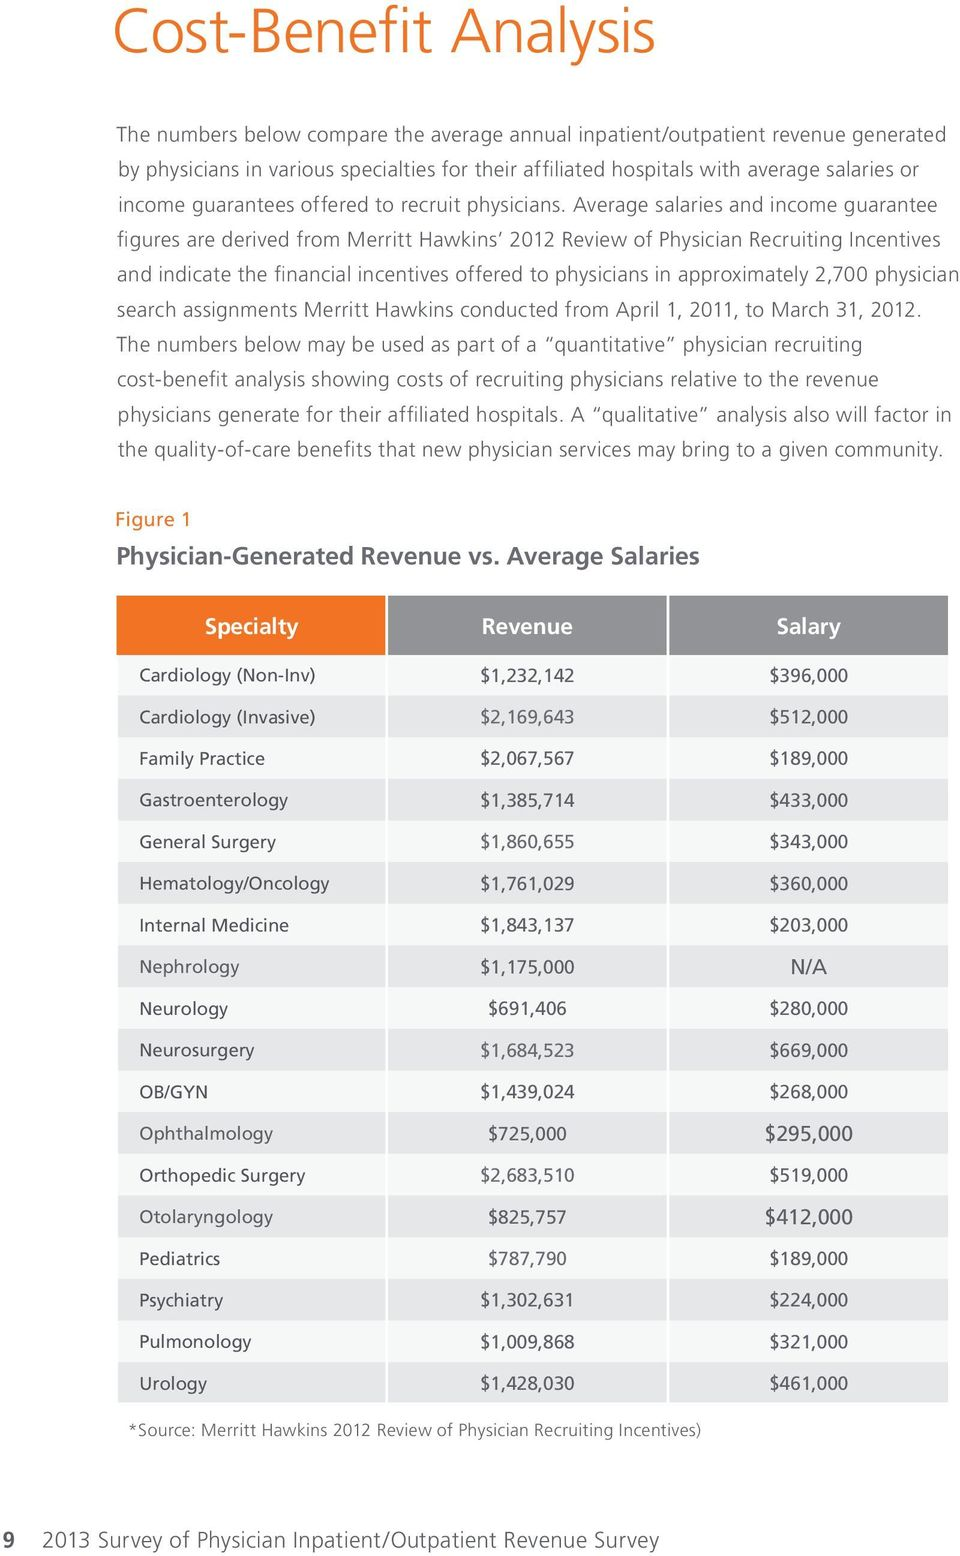 Average salaries and income guarantee figures are derived from Merritt Hawkins 2012 Review of Physician Recruiting Incentives and indicate the financial incentives offered to physicians in